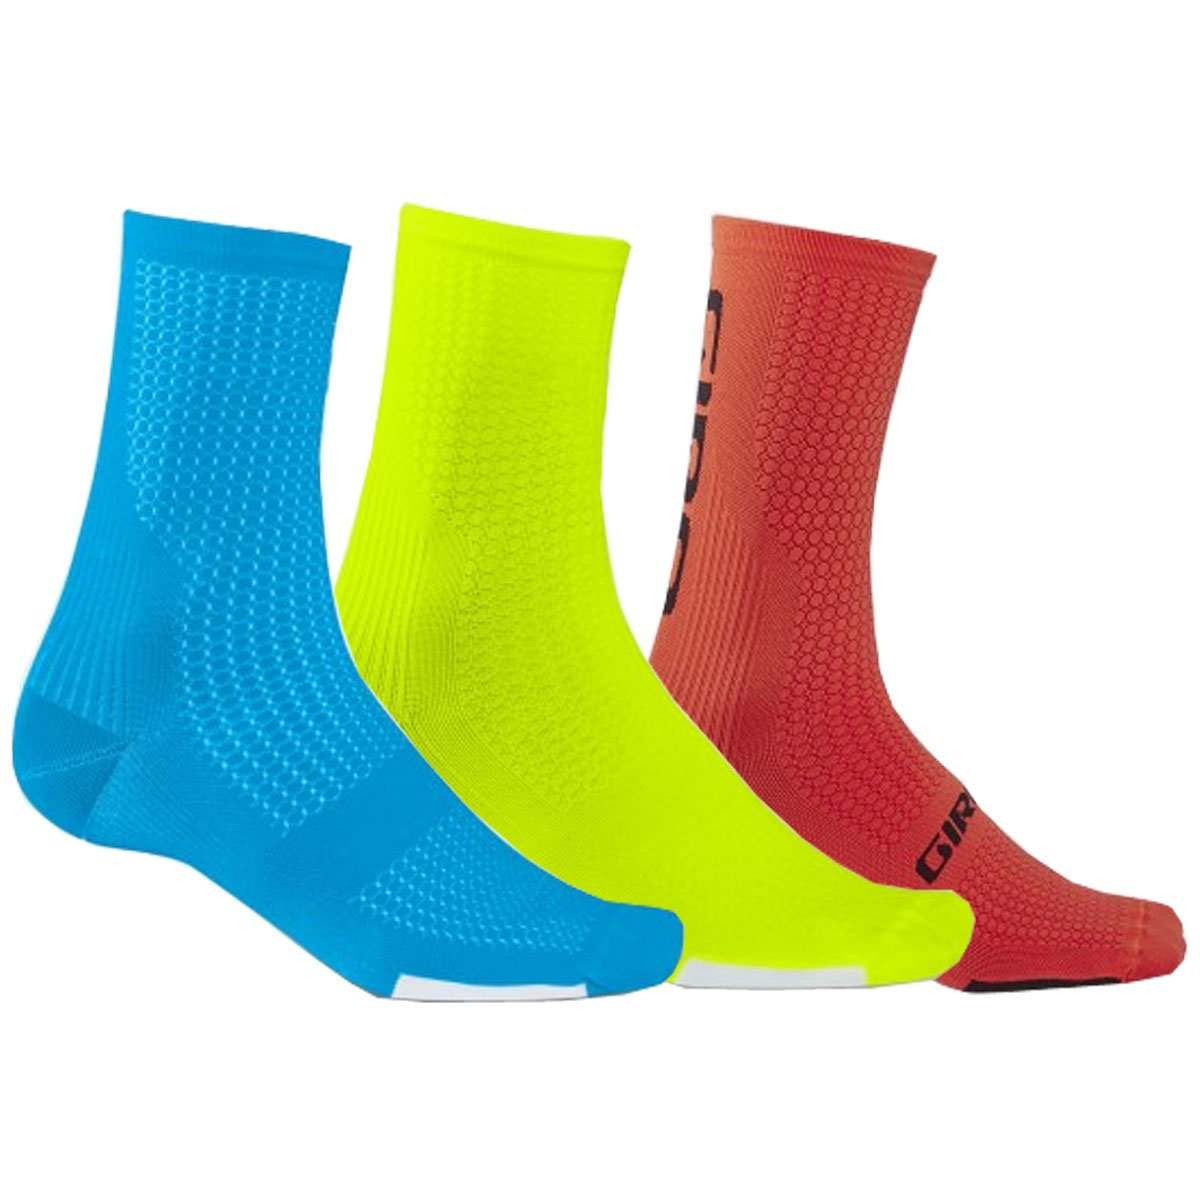 Giro cycling socks